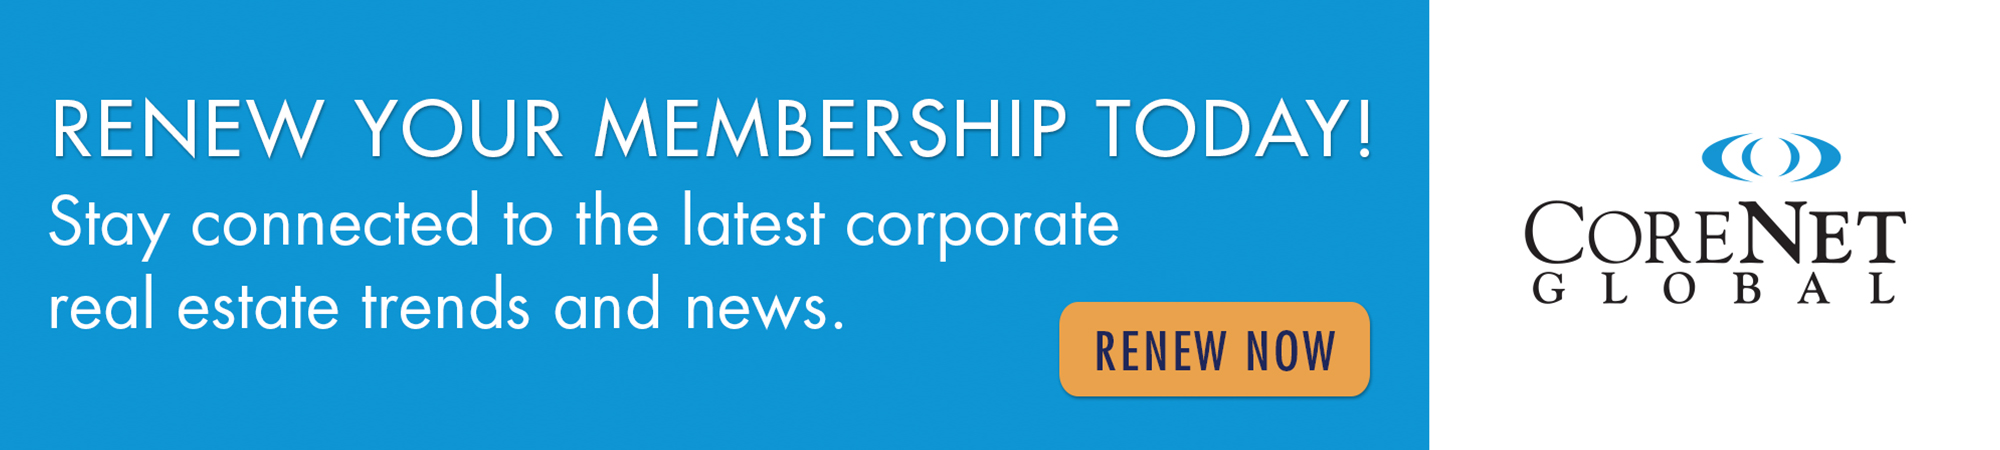 Renew your membership today!